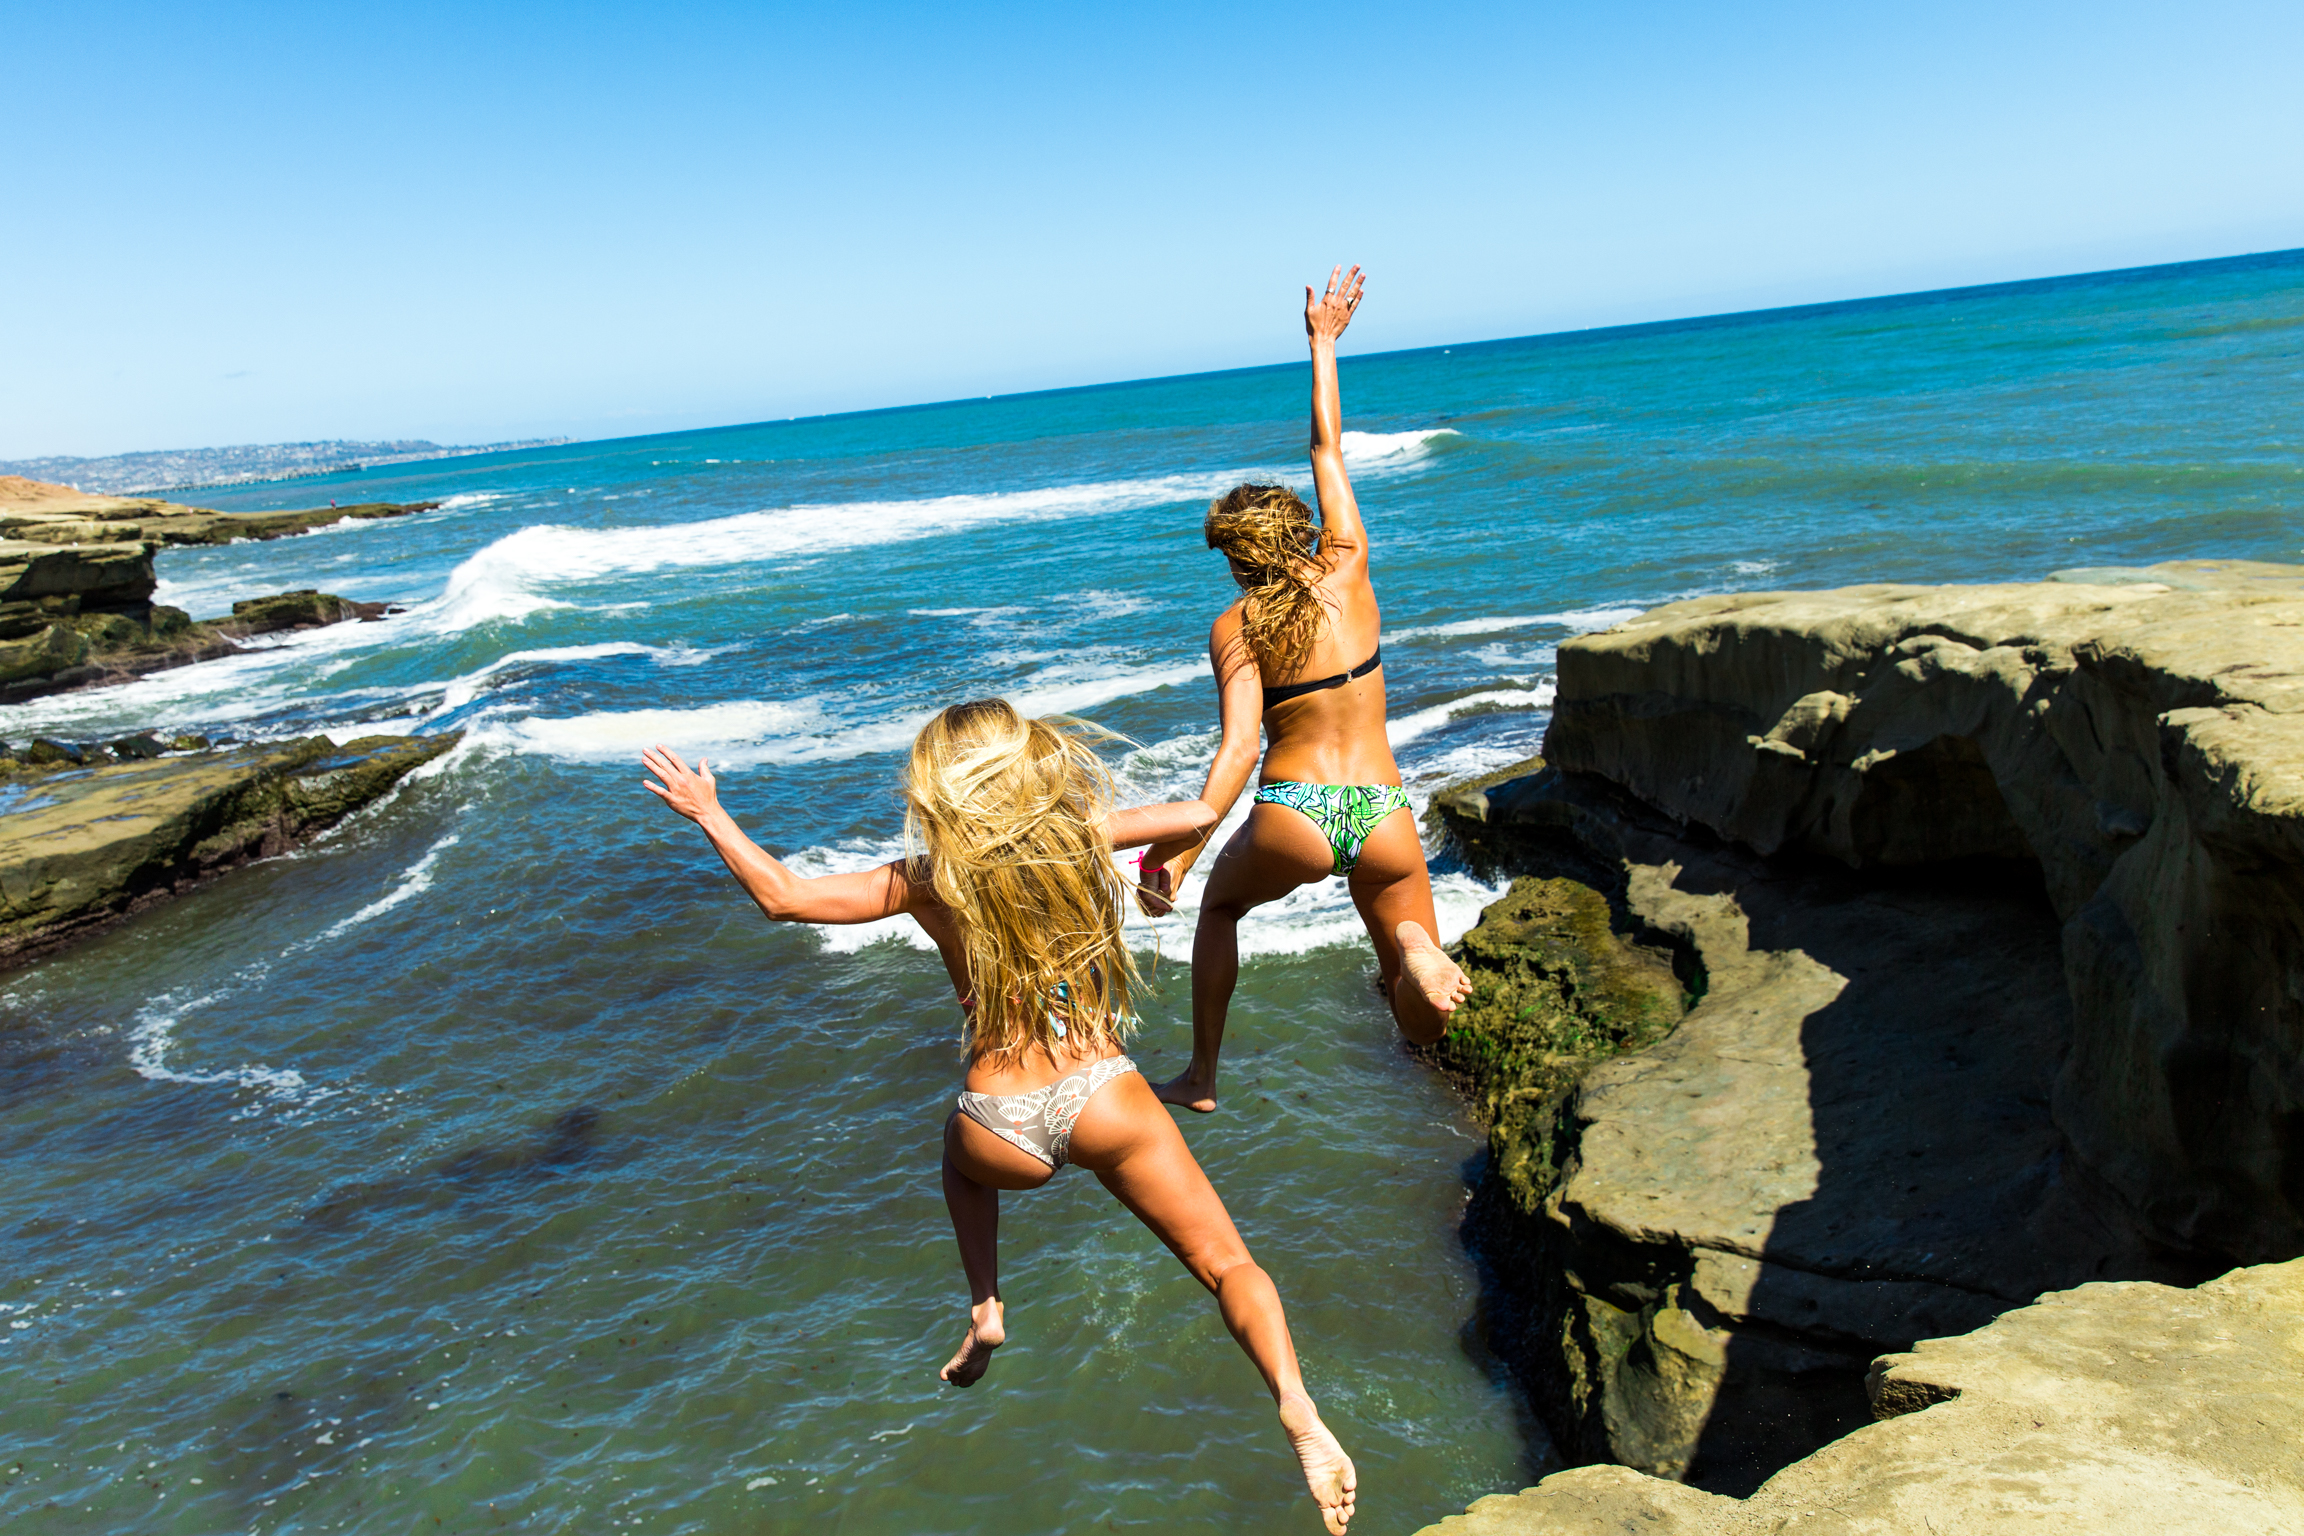 Photo of two women jumping into ocean.